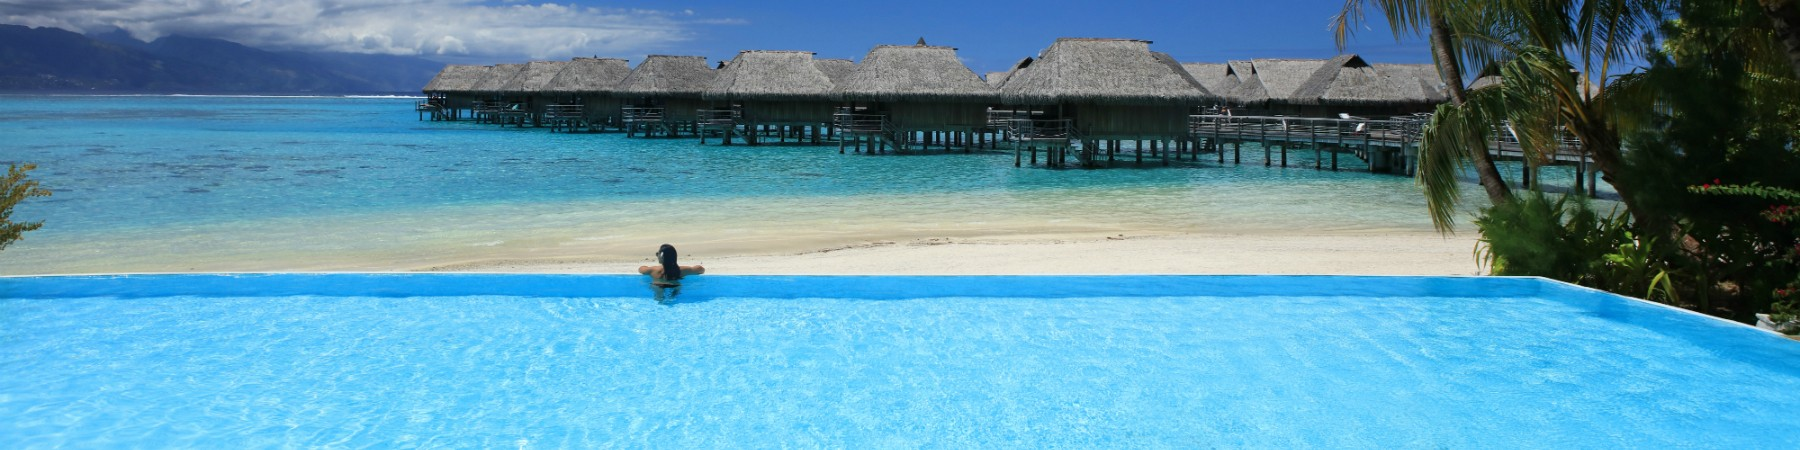 sofitel-moorea-beach-bar-menu